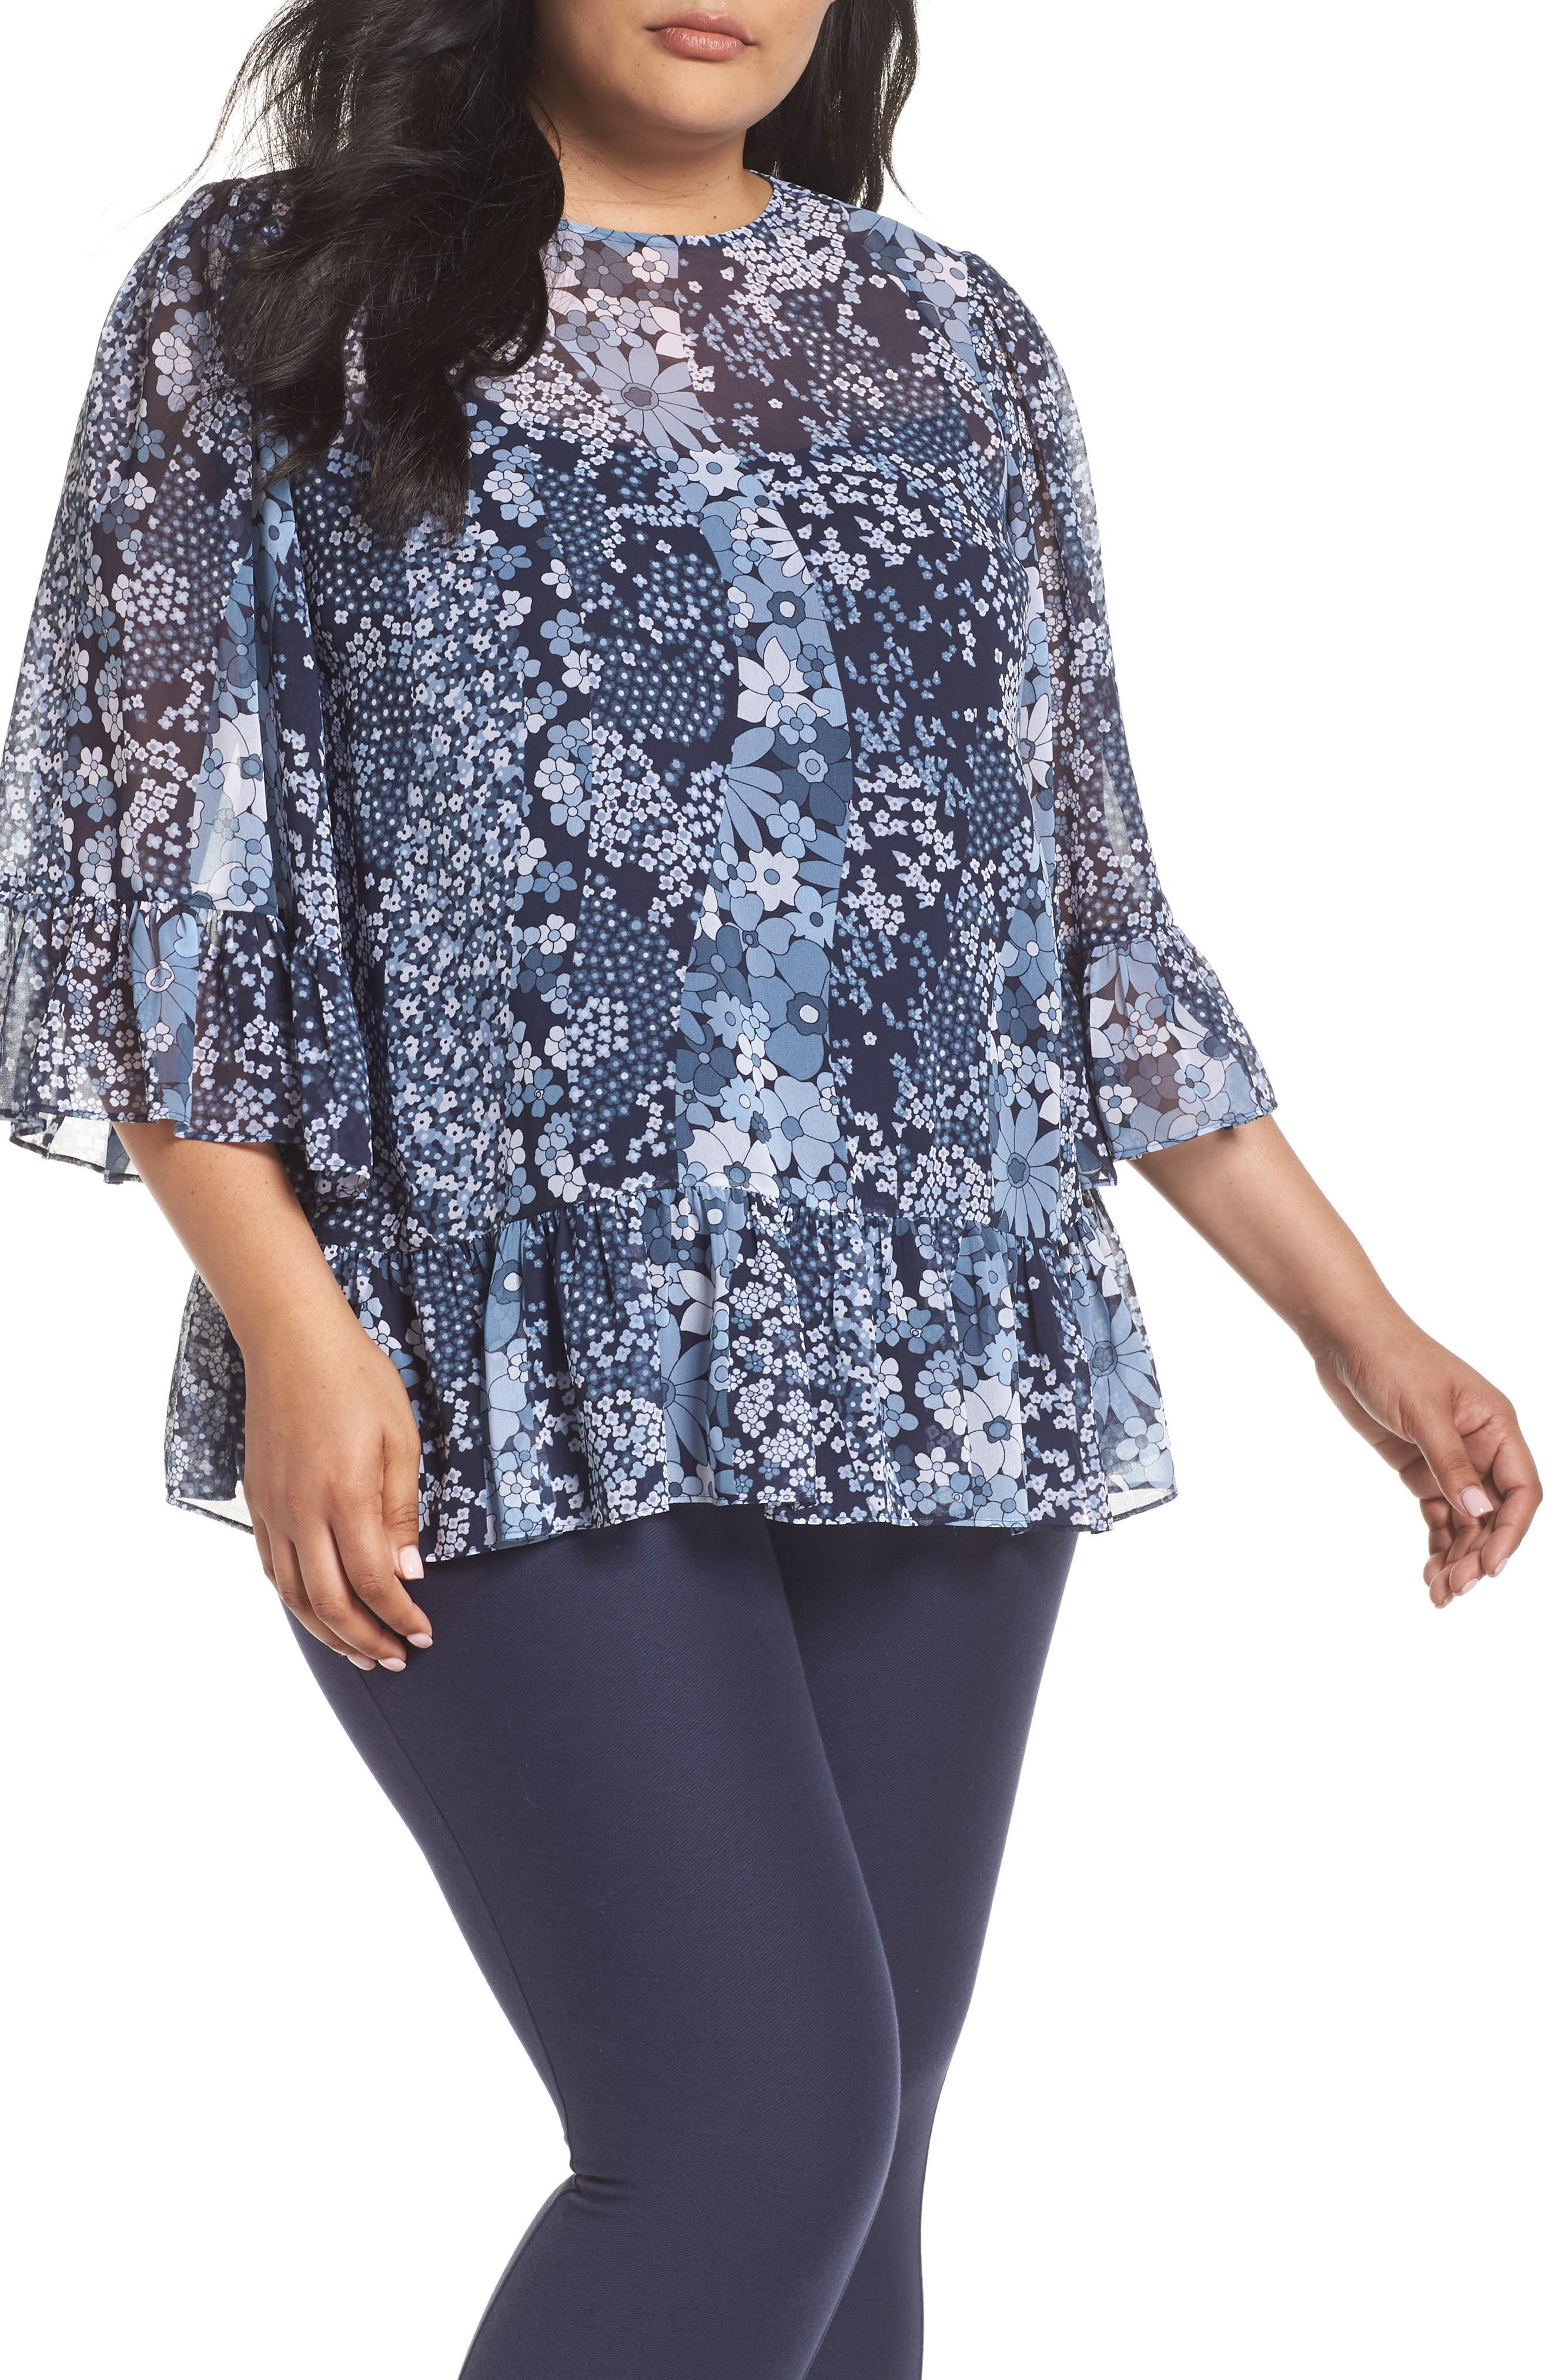 Patchwork Flowers Top,                             Main thumbnail 1, color,                             True Navy/ Light Chambray